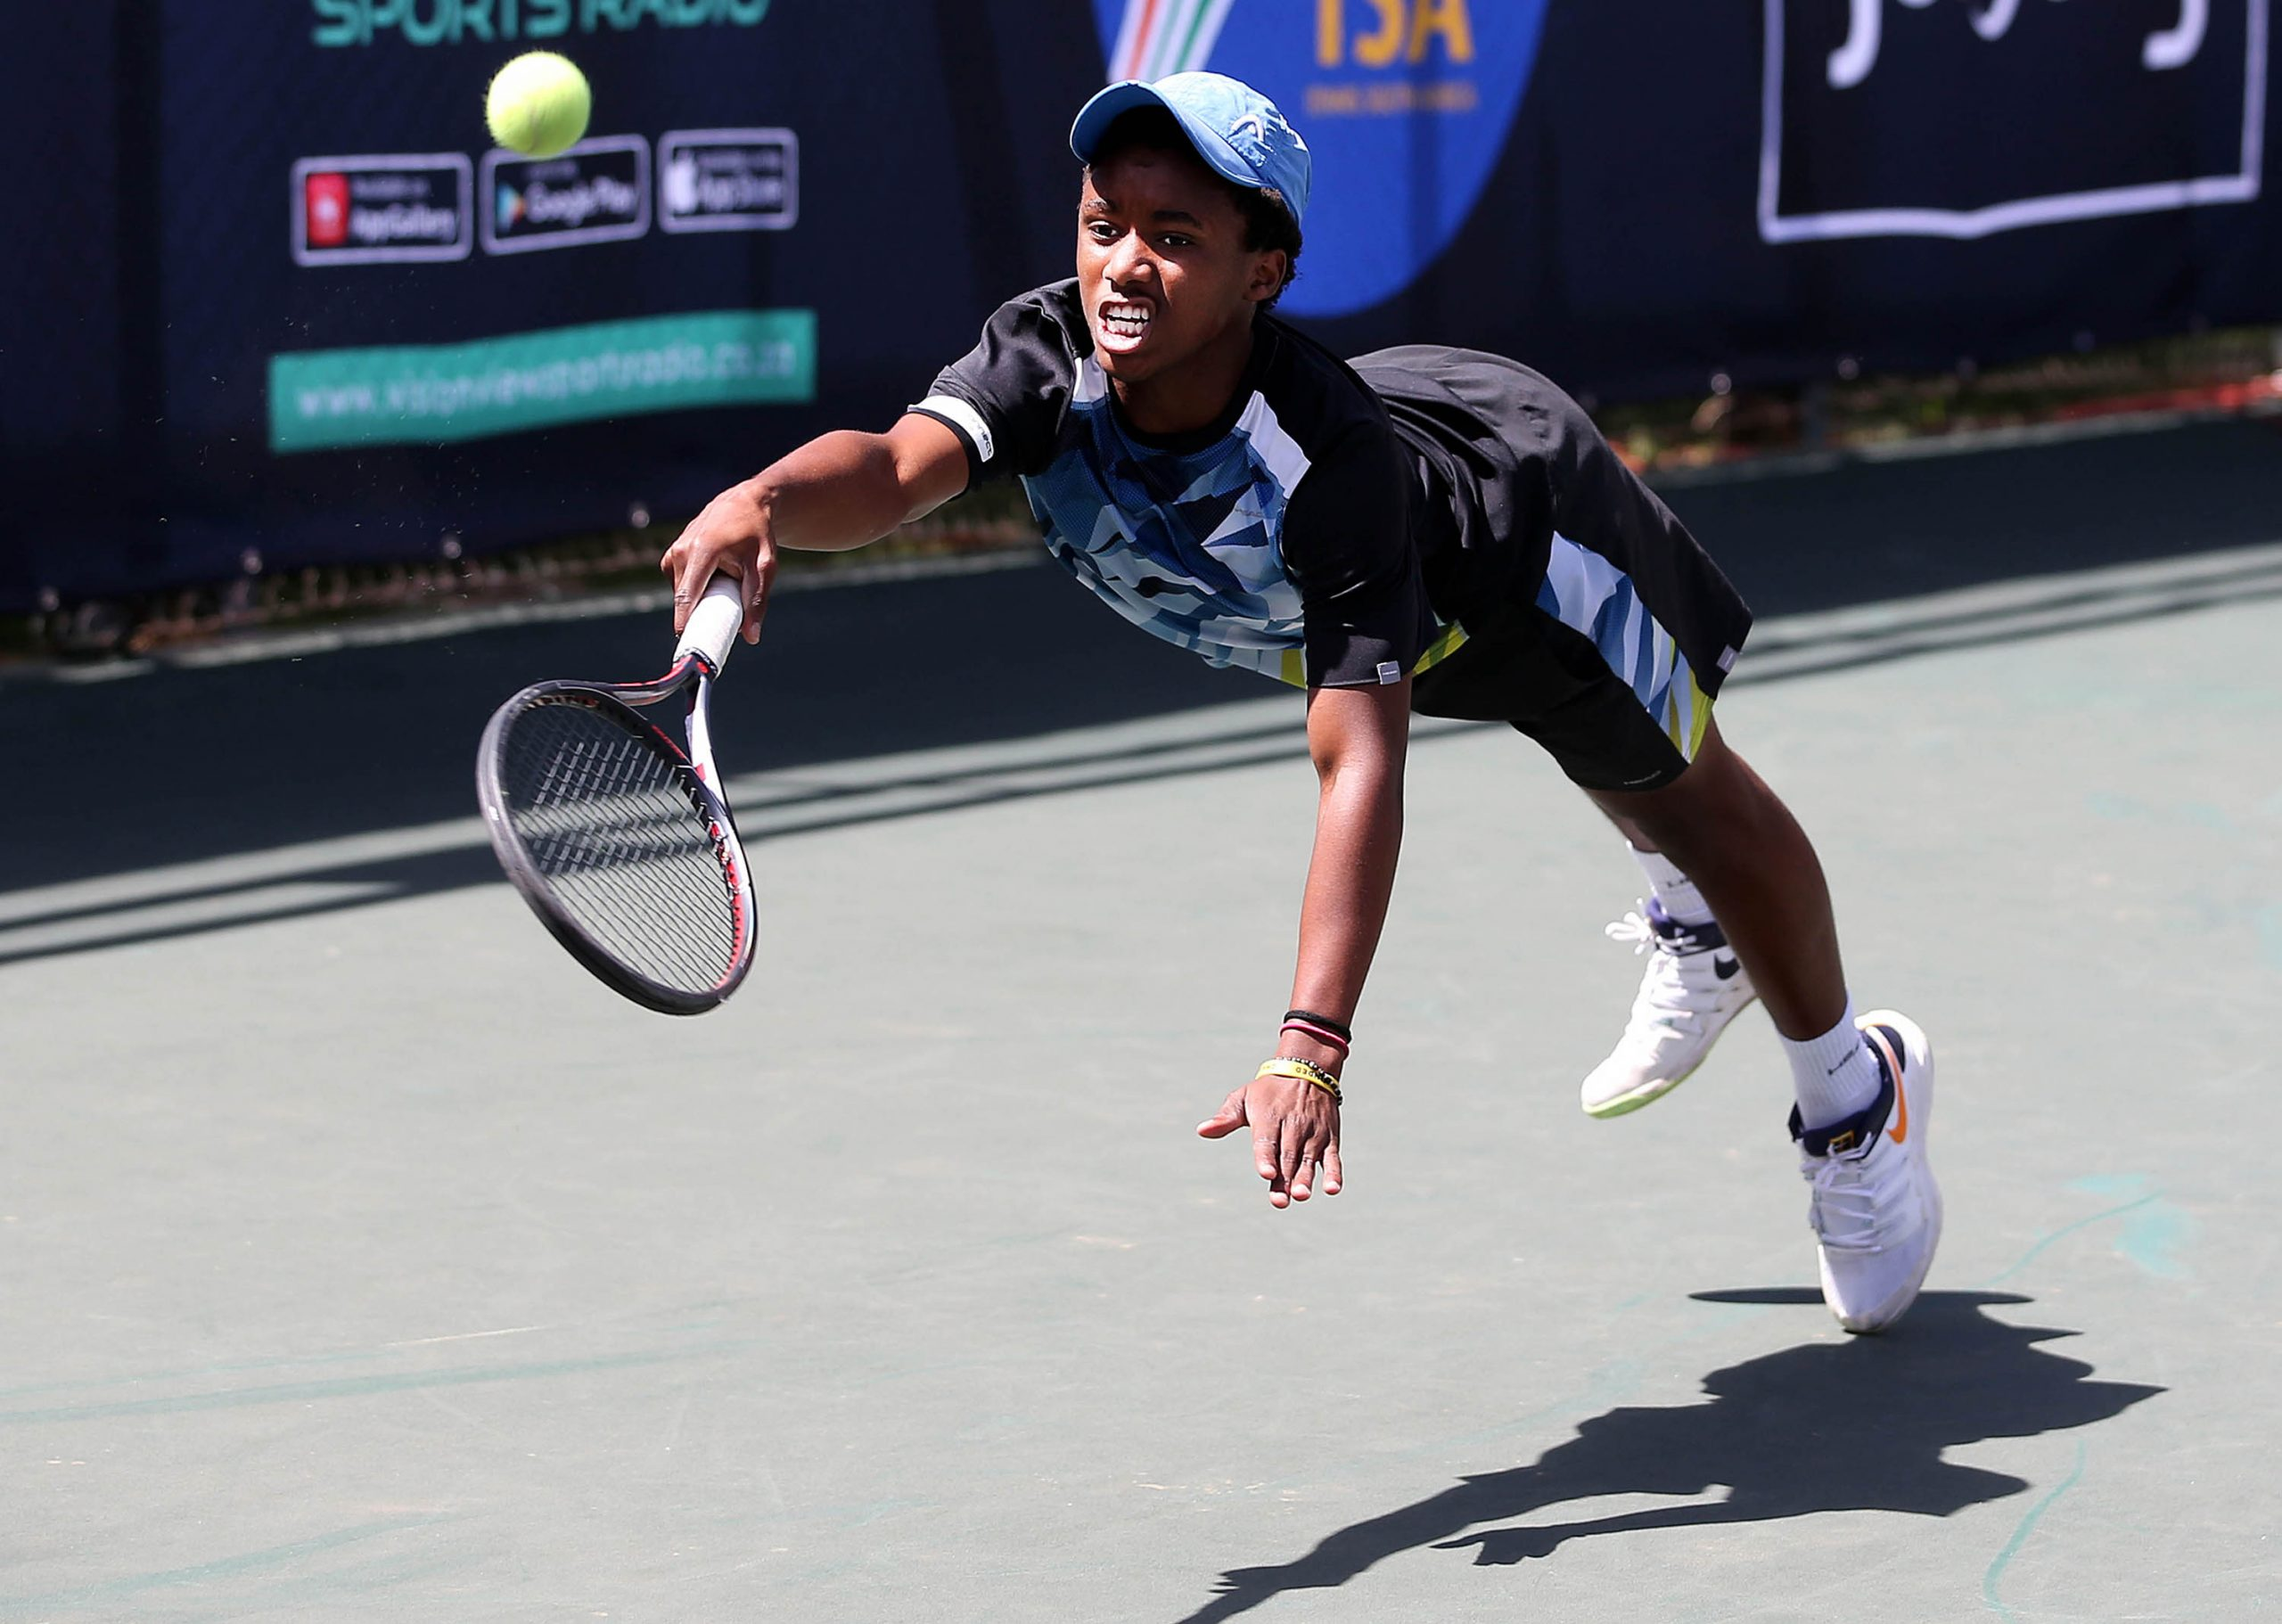 Teen sensation Montsi included in SA Davis Cup team - Sports Leo